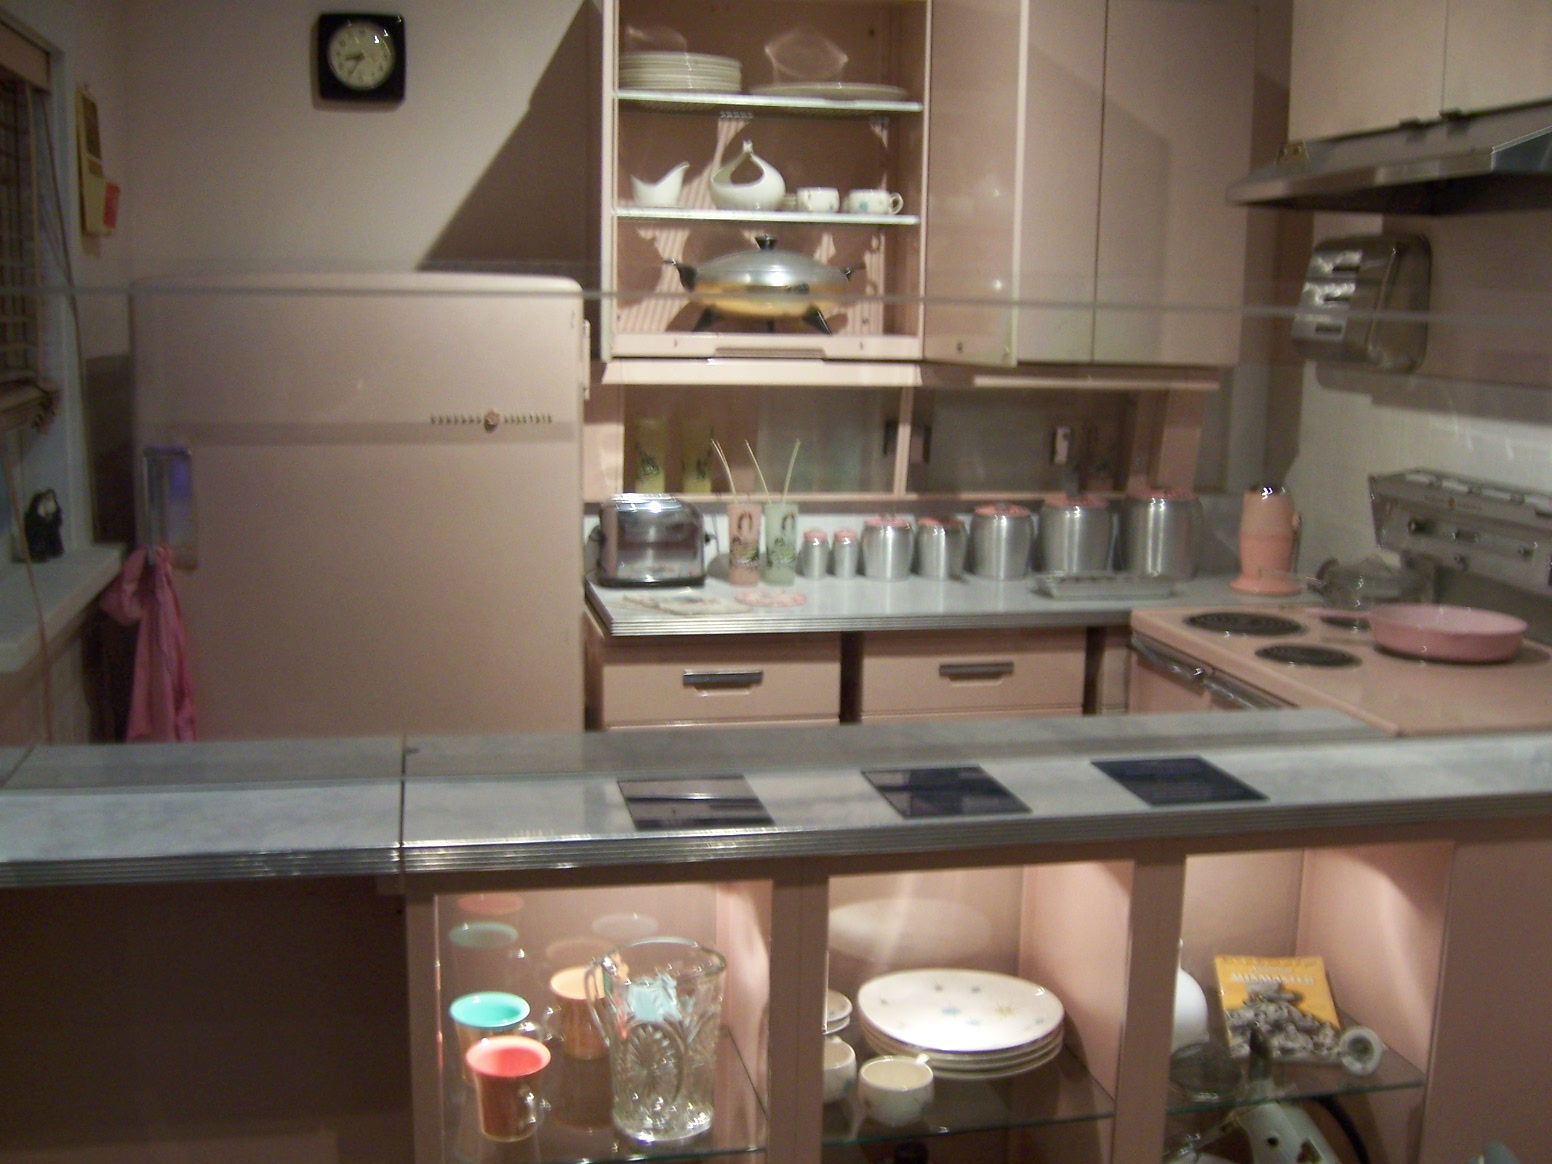 St. Ann Exhibit Kitchen